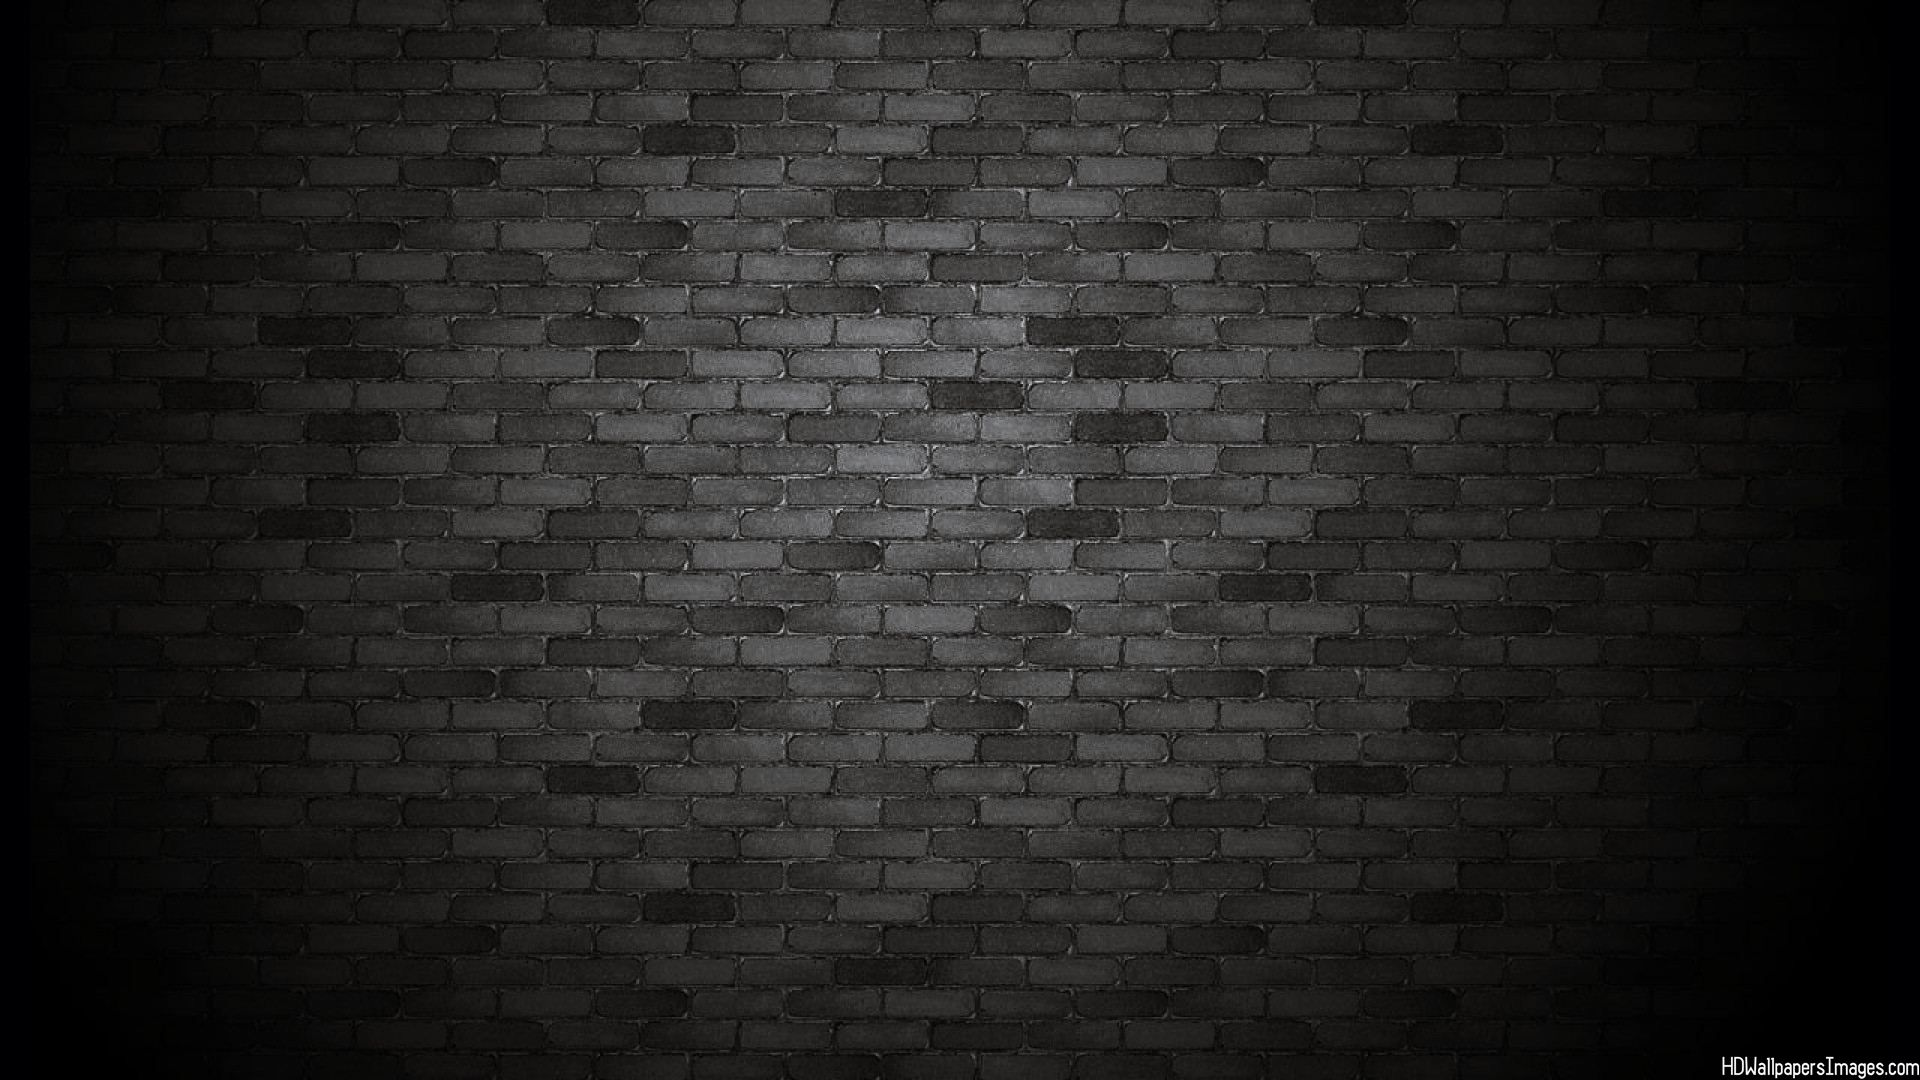 Black-Brick-Texture-Design-Inspiration-Floor-Ideas-Design-wallpaper-wp3803209